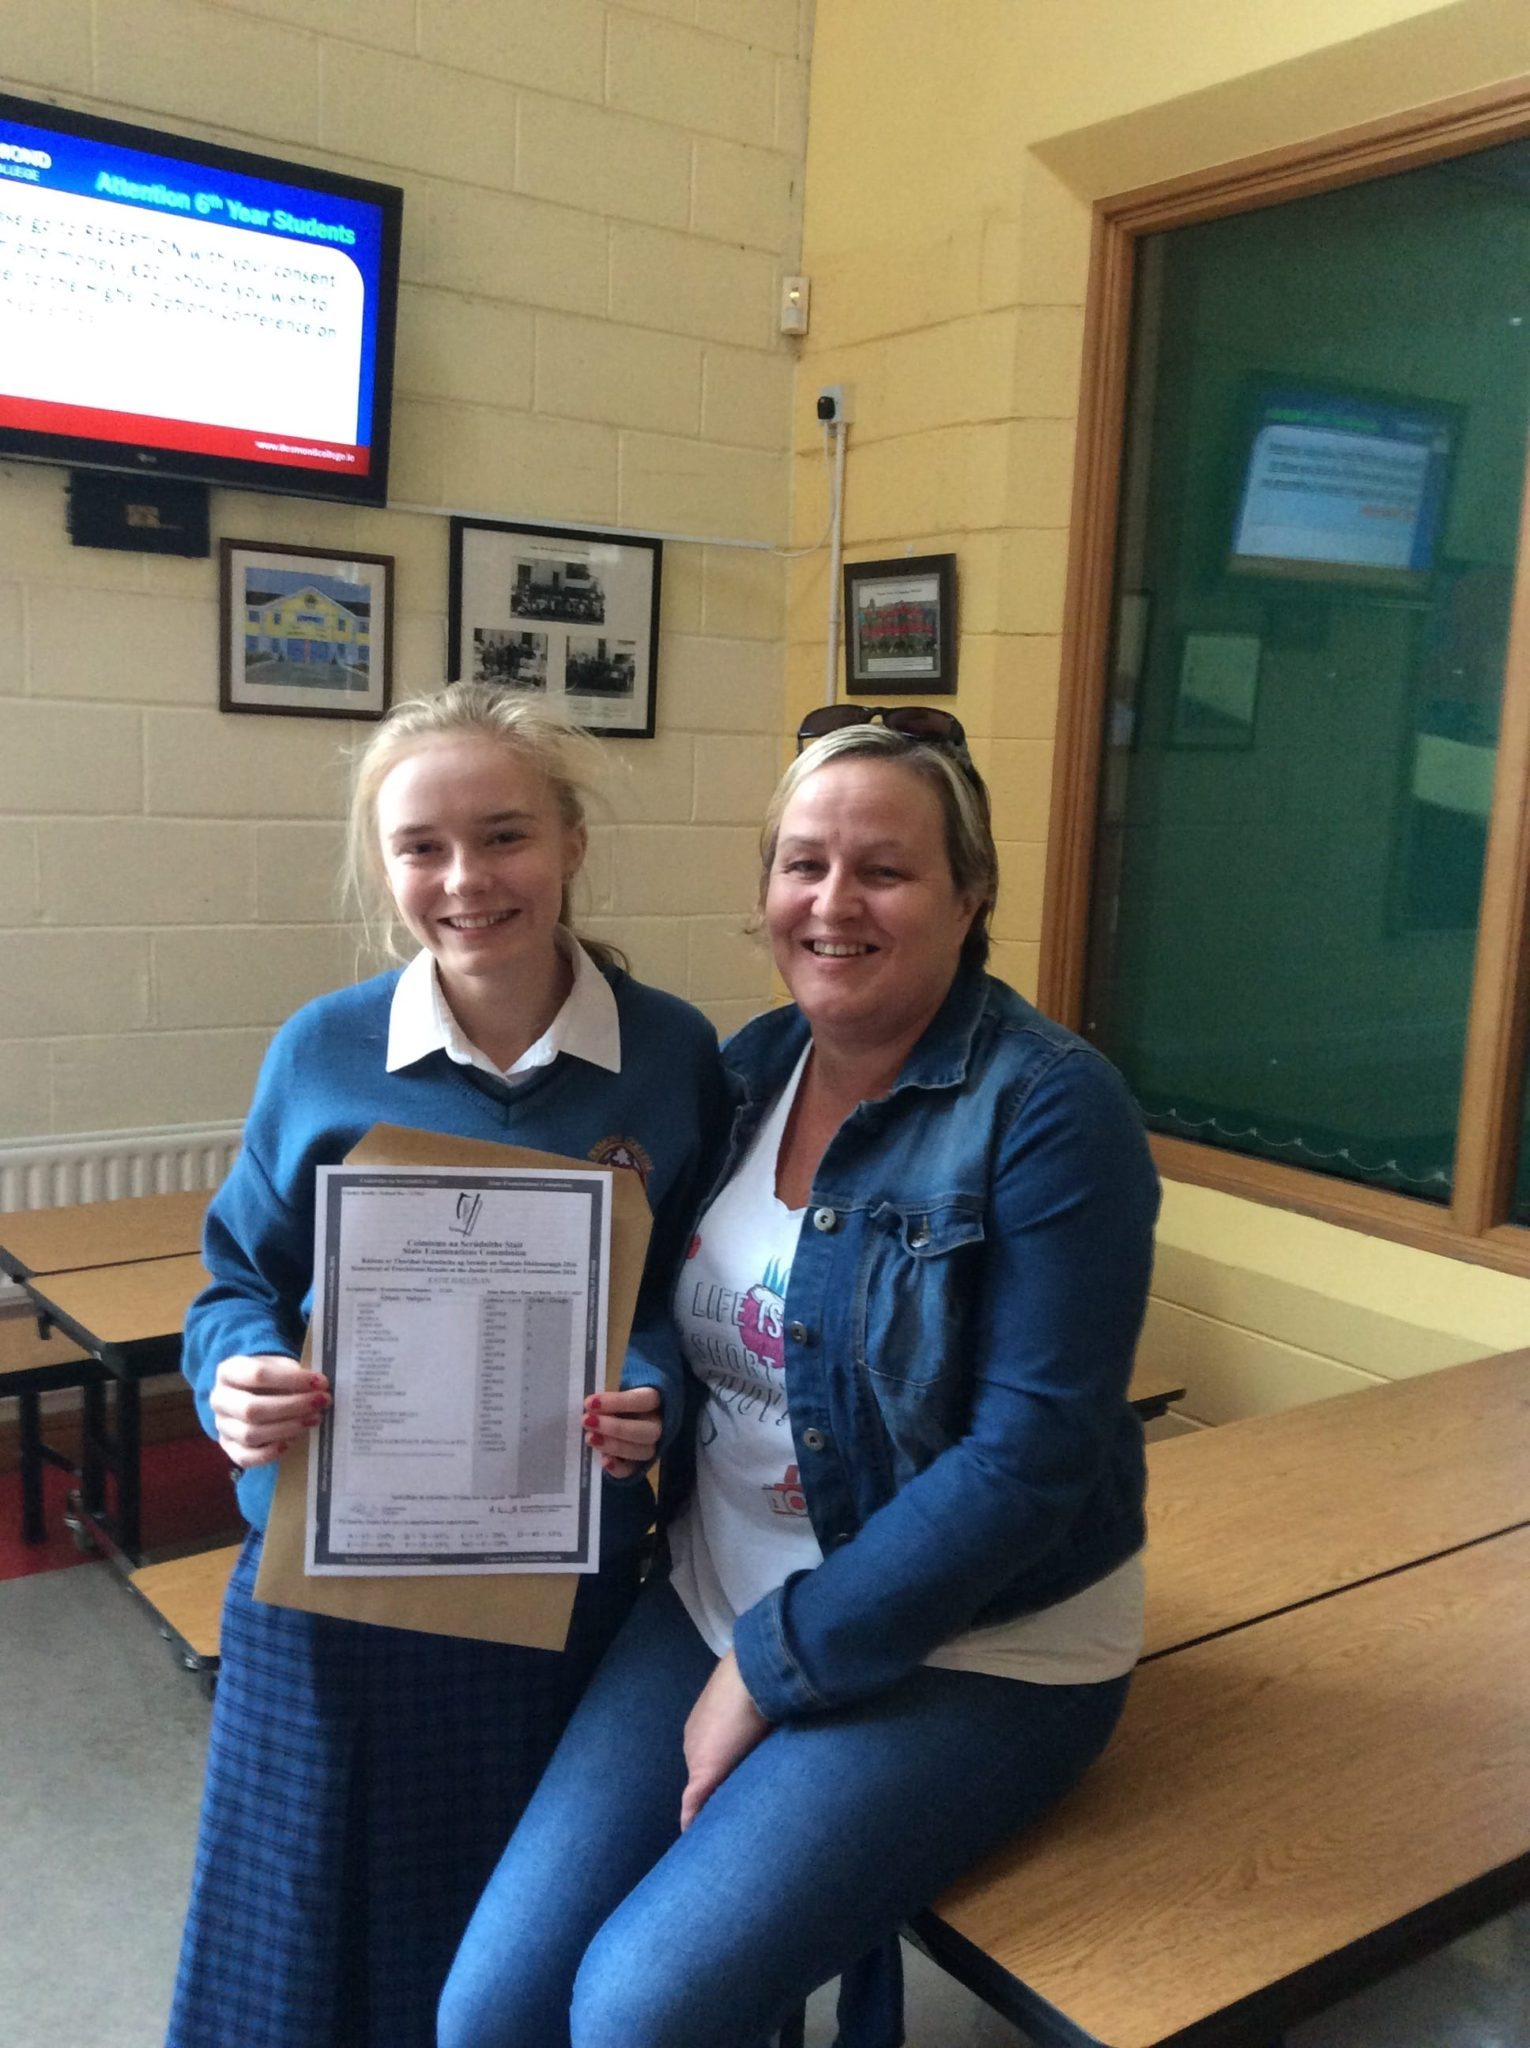 2016 Sept: Desmond College student Katie Hallinan with here Mum after receiving excellent results